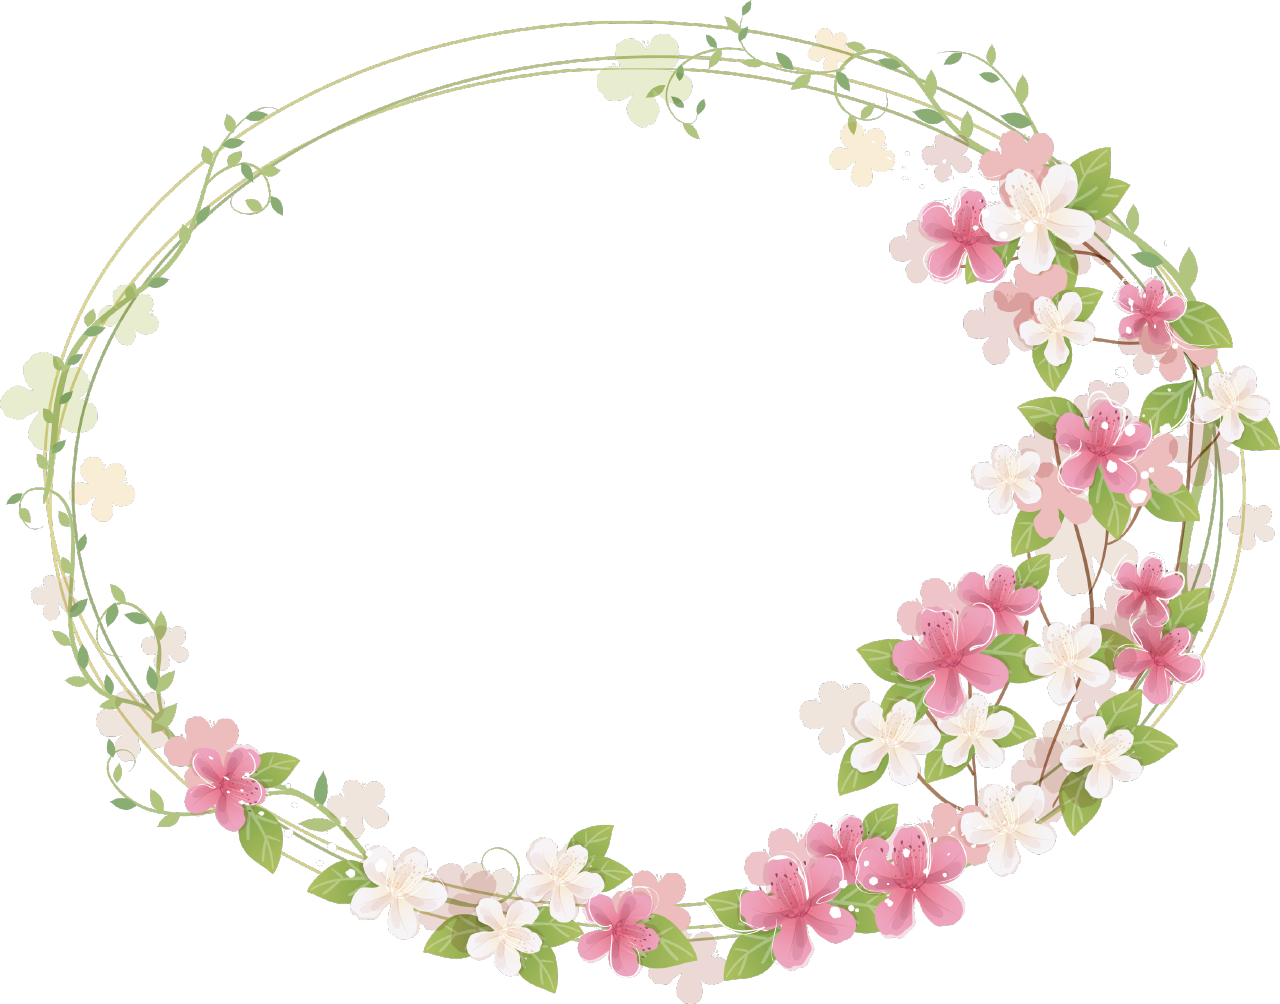 Cute frames png. Floral frame photos mart